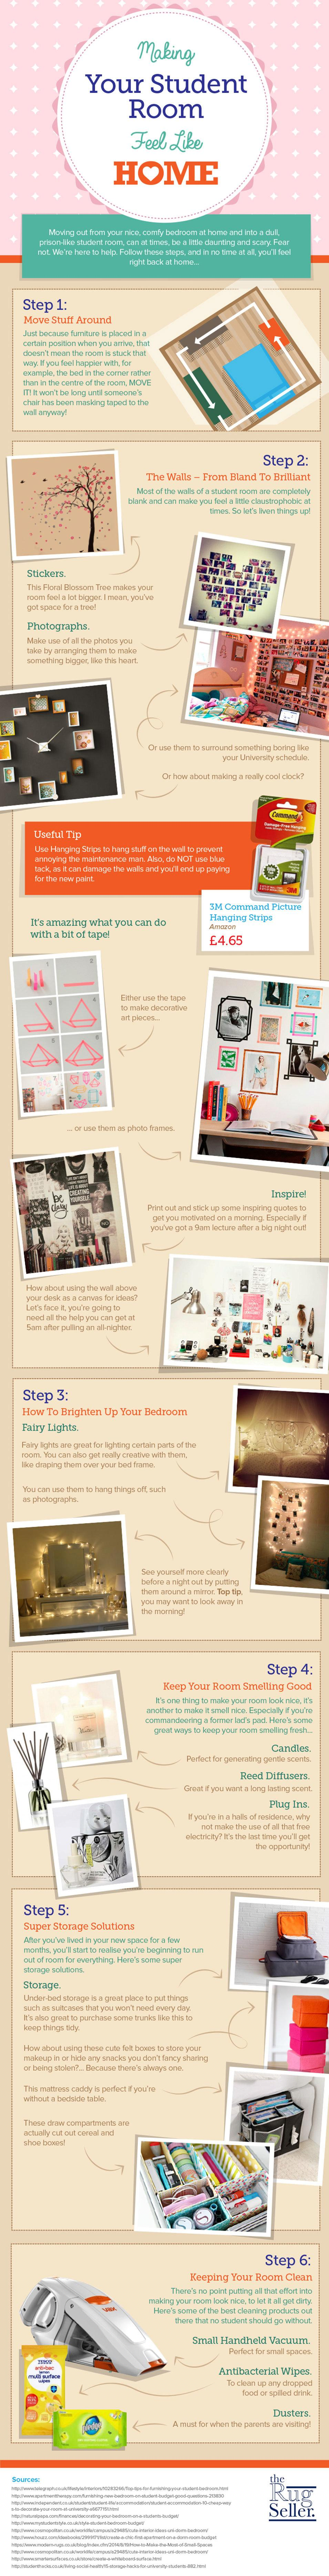 Making Your Student Room a Home Infographic